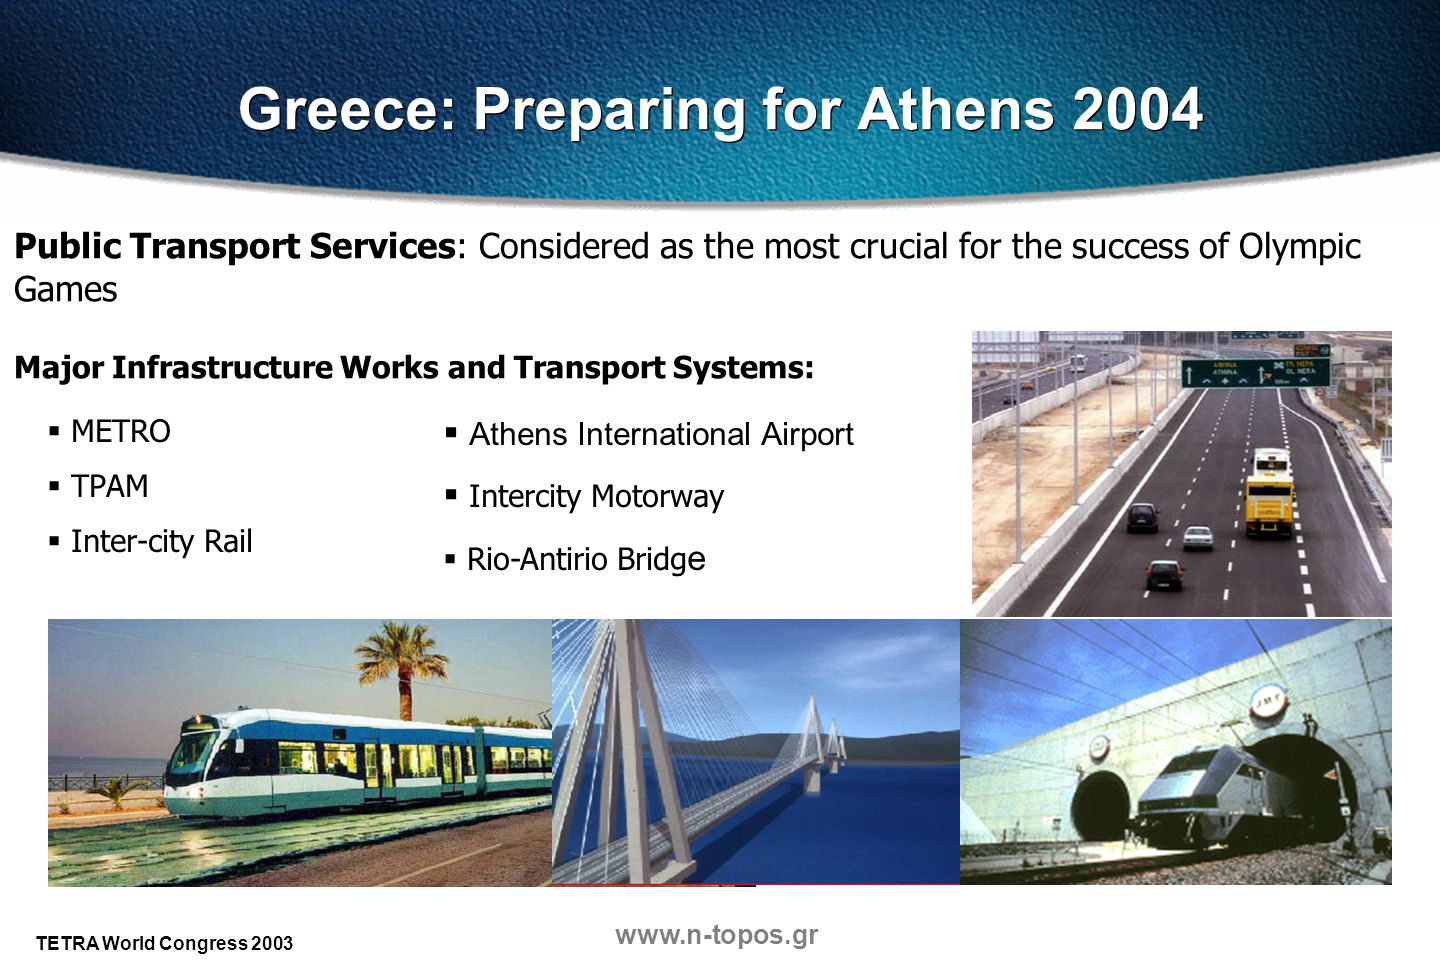 www.n-topos.gr TETRA World Congress 2003 Greece: Preparing for Athens 2004 Public Transport Services: Considered as the most crucial for the success o